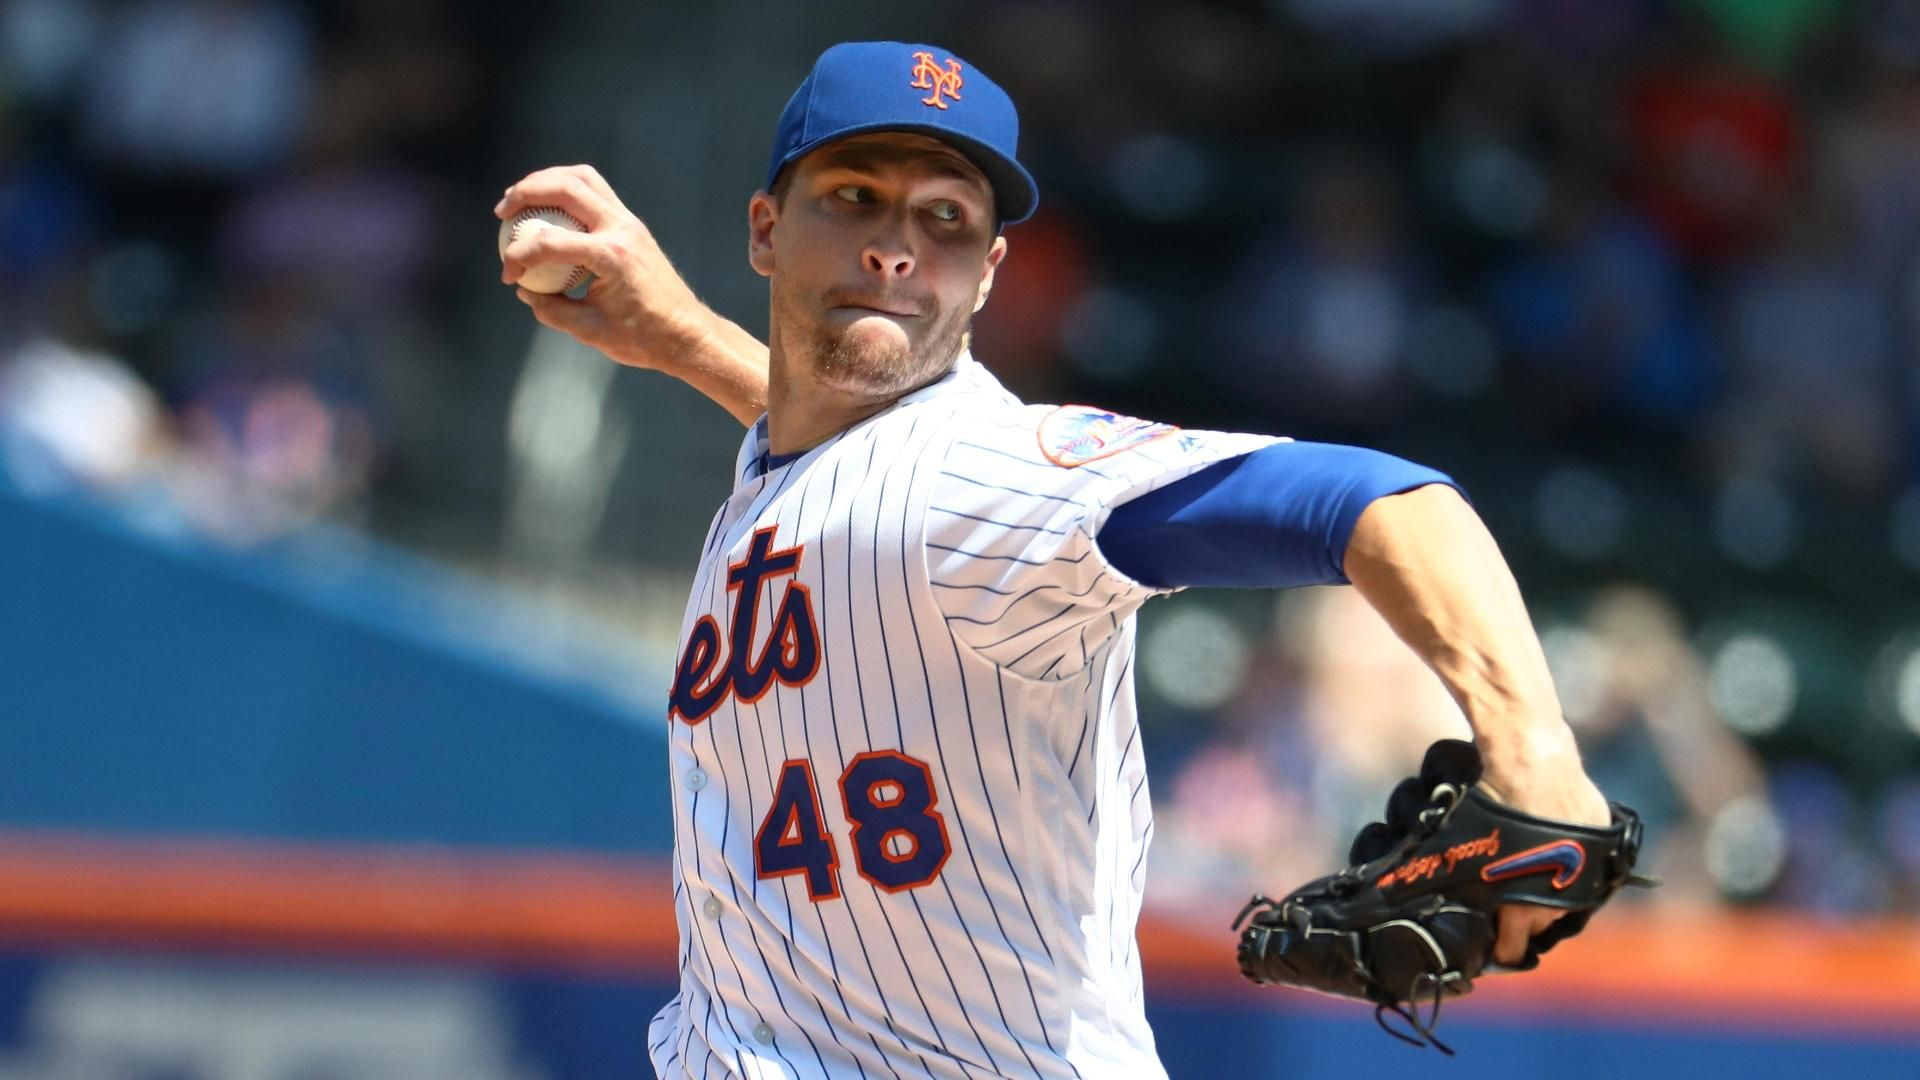 DeGrom's historic Cy Young-winning season